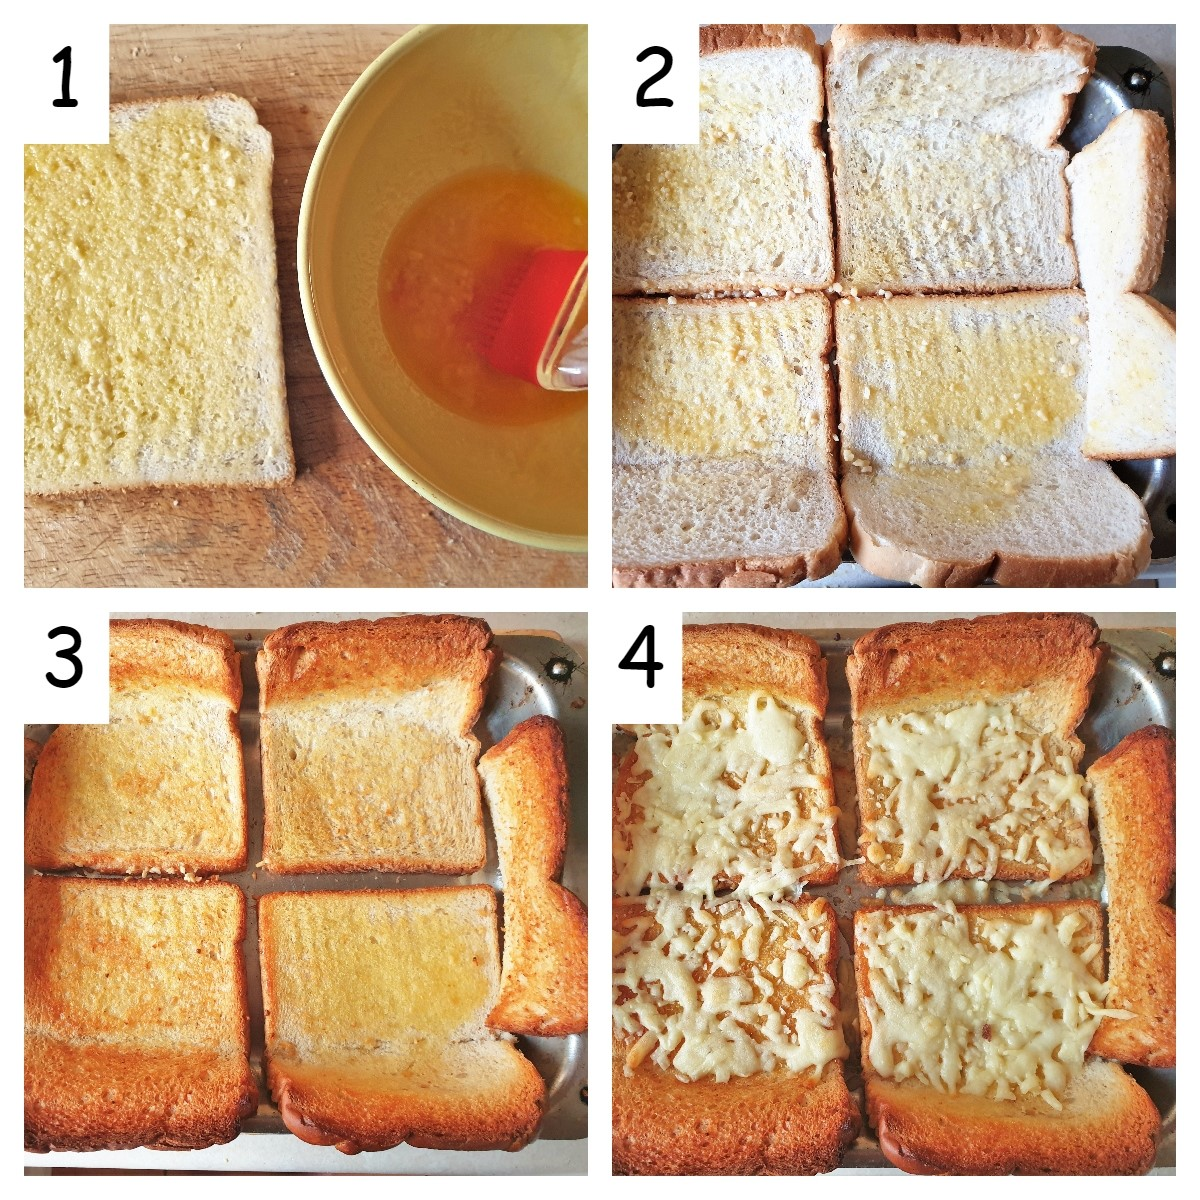 A collage of 4 images showing the garlic bread crust being prepared.